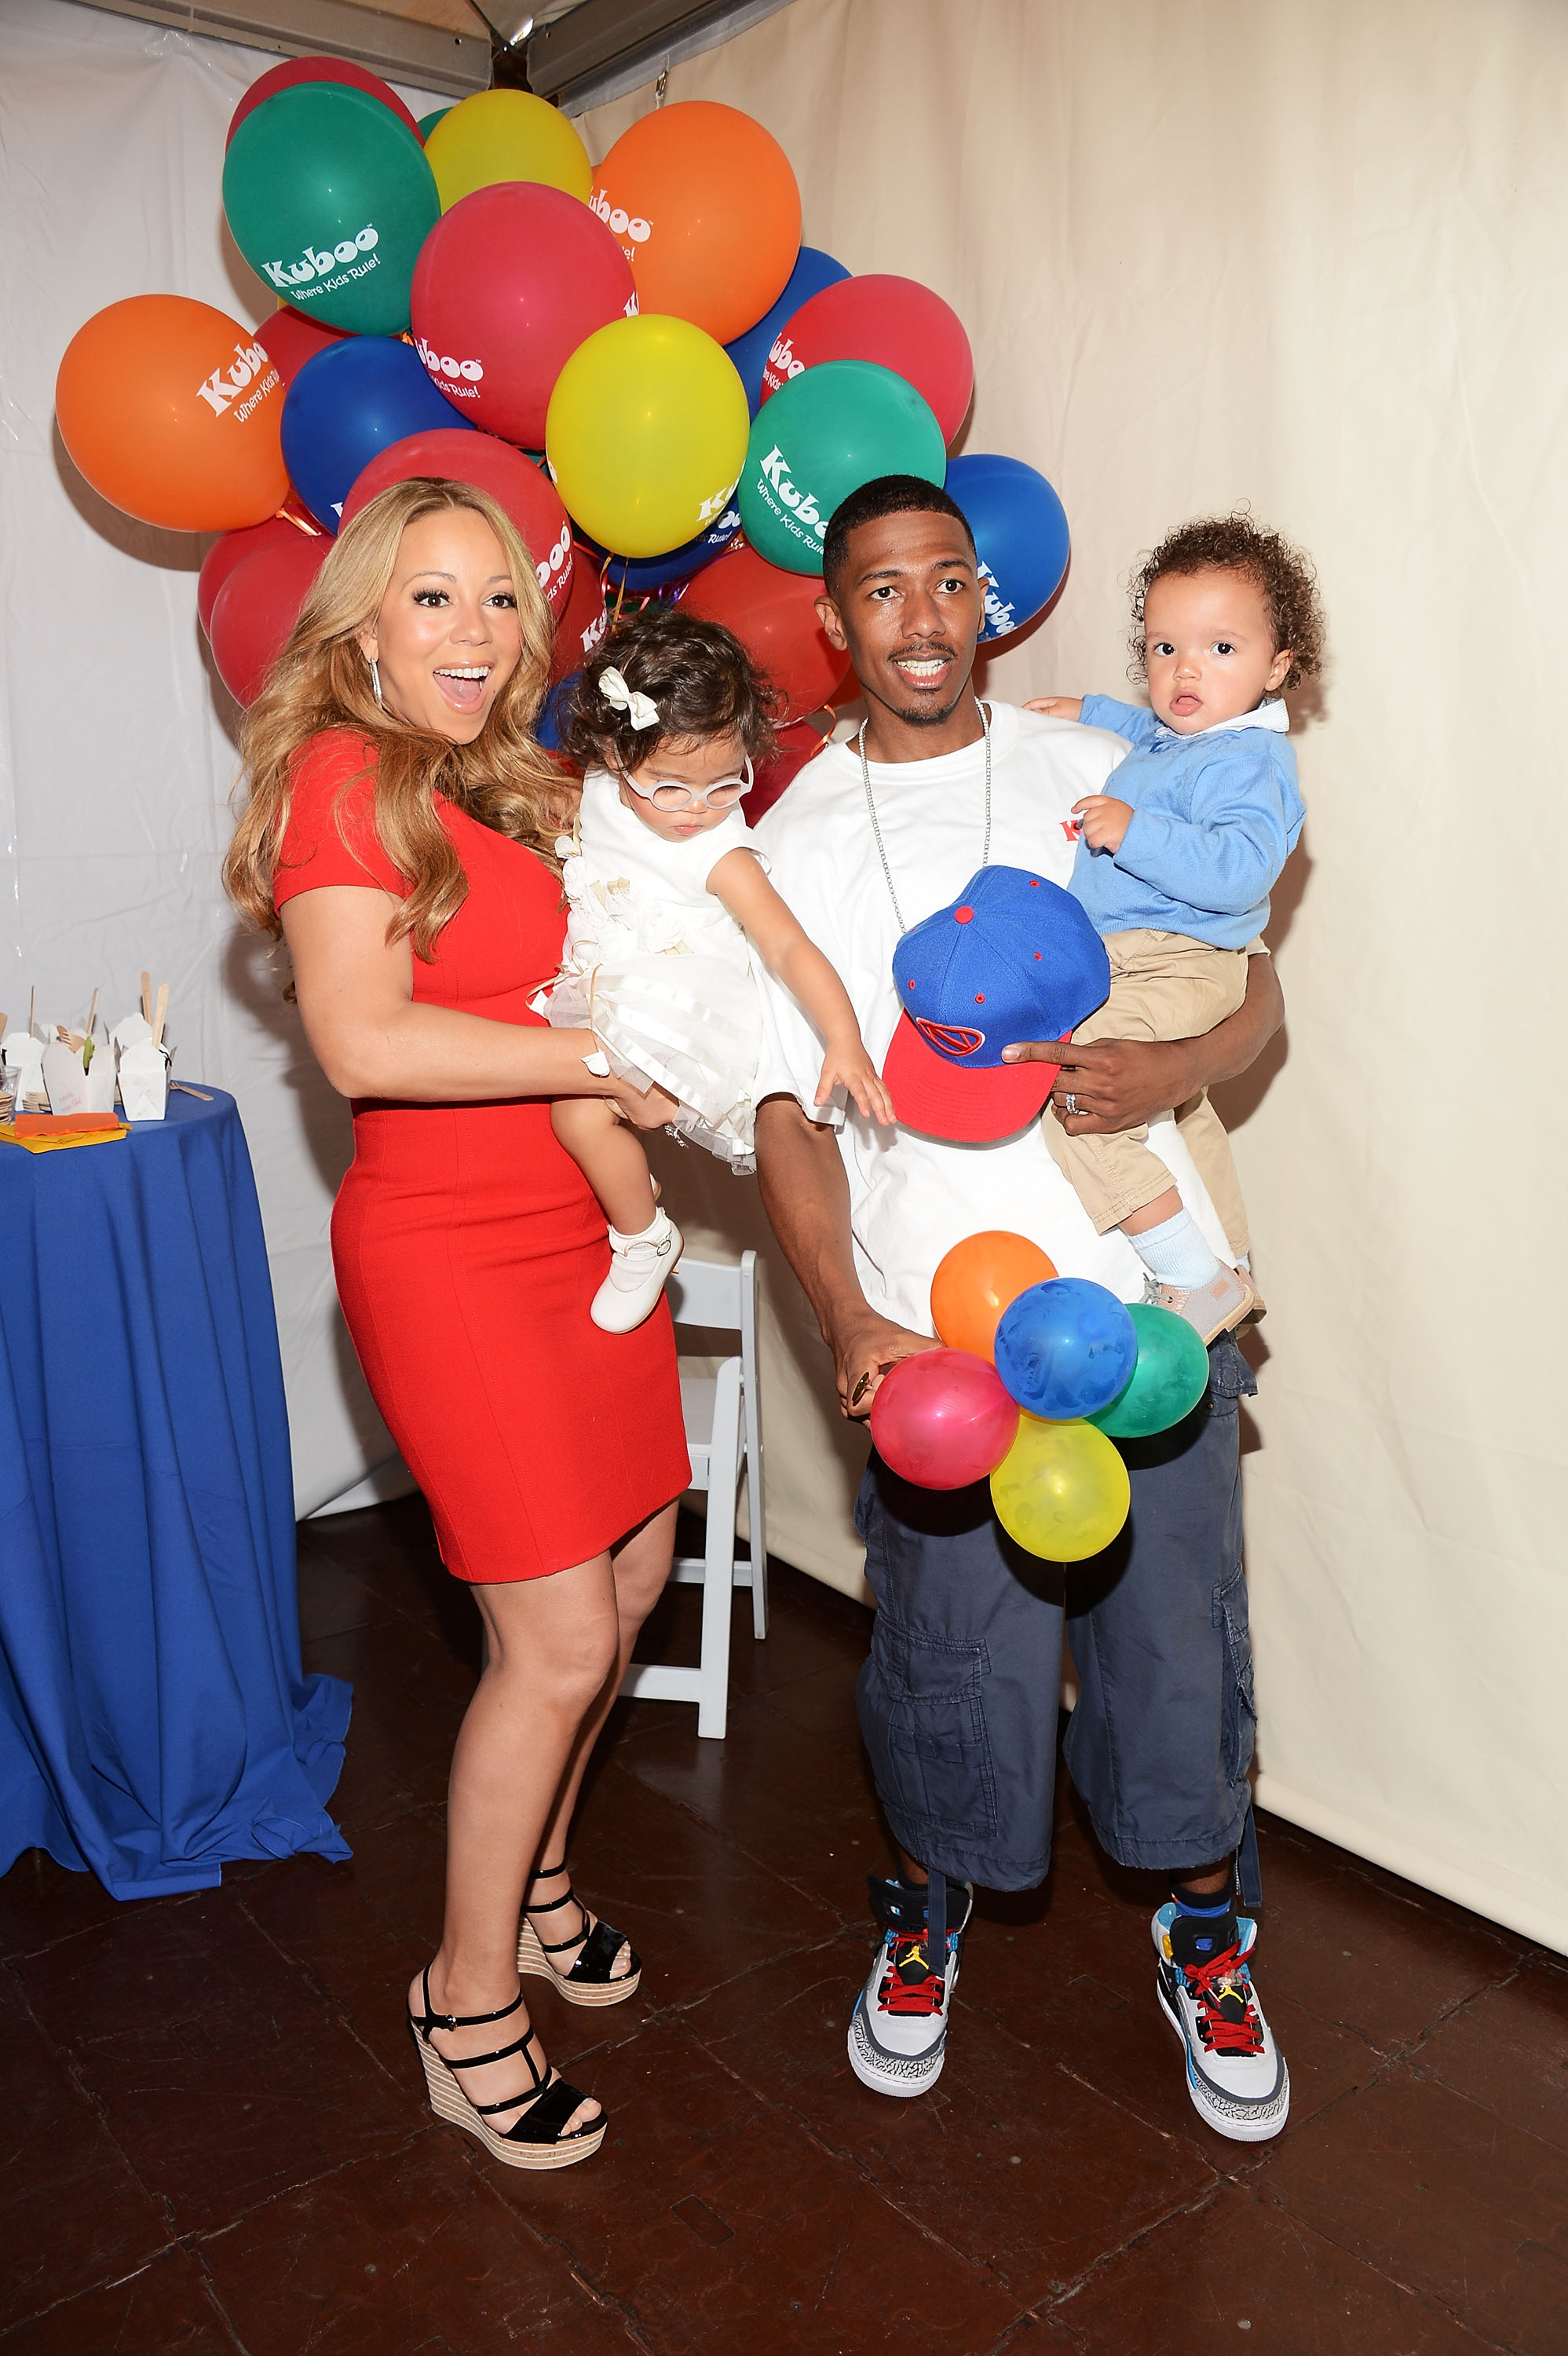 Nick Cannon and Mariah Carey and Mariah Carey had a family day with their twins, Moroccan and Monroe Cannon.